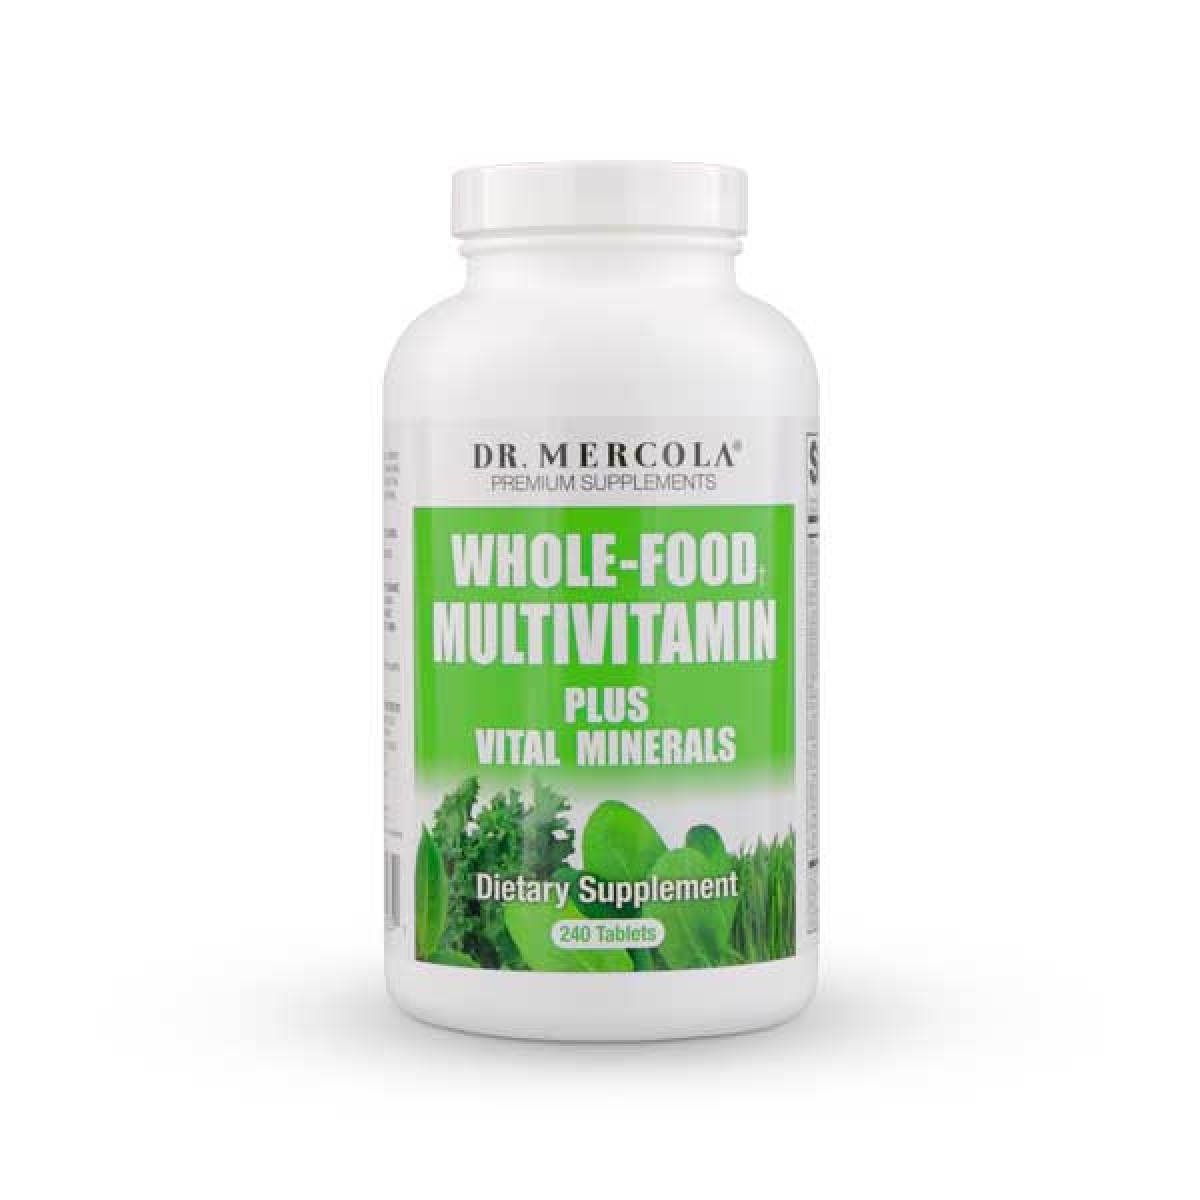 Whole Food Multivitamin Plus Review